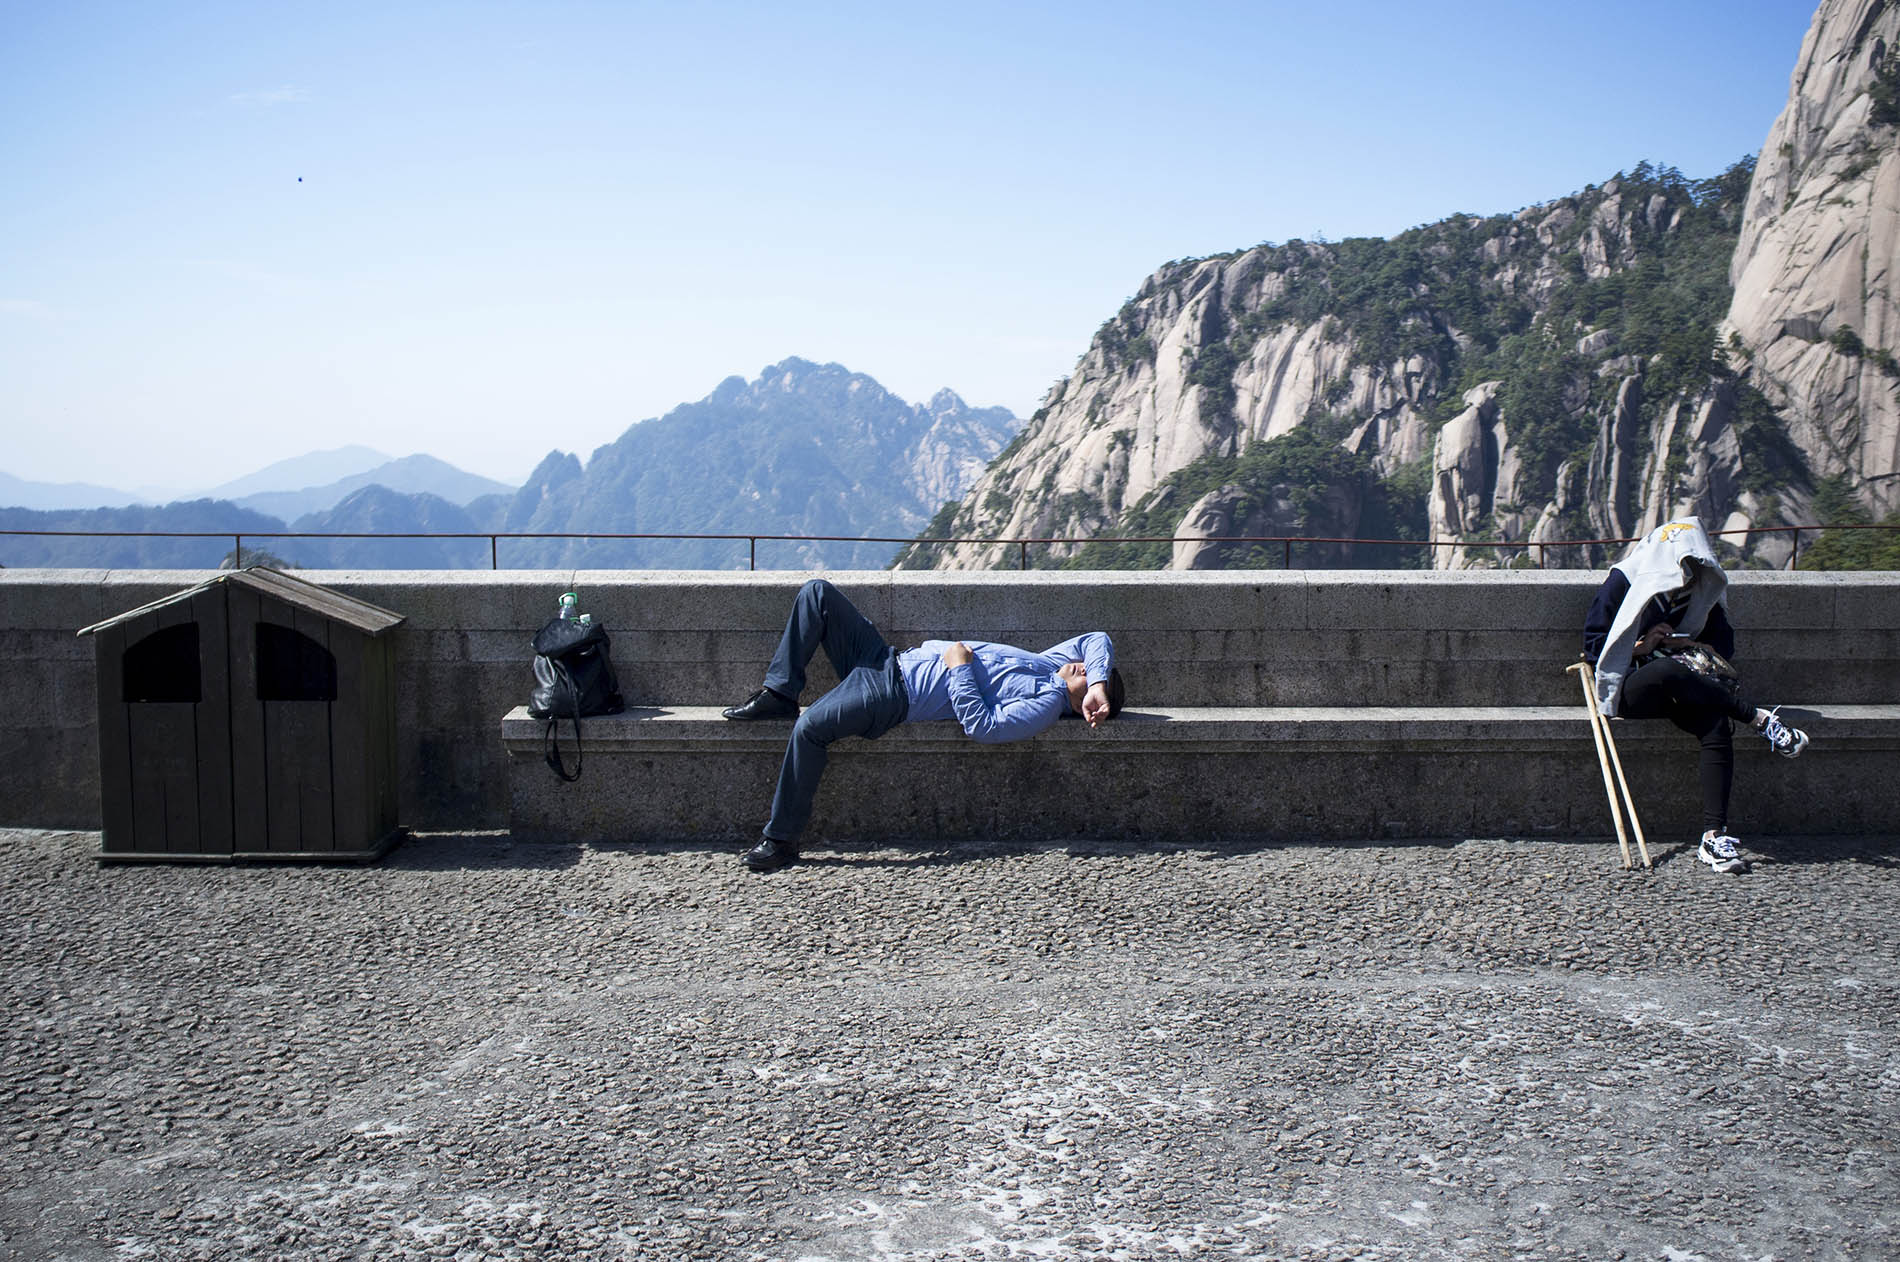 Chinese person occupied with his usual activity – having a nap.